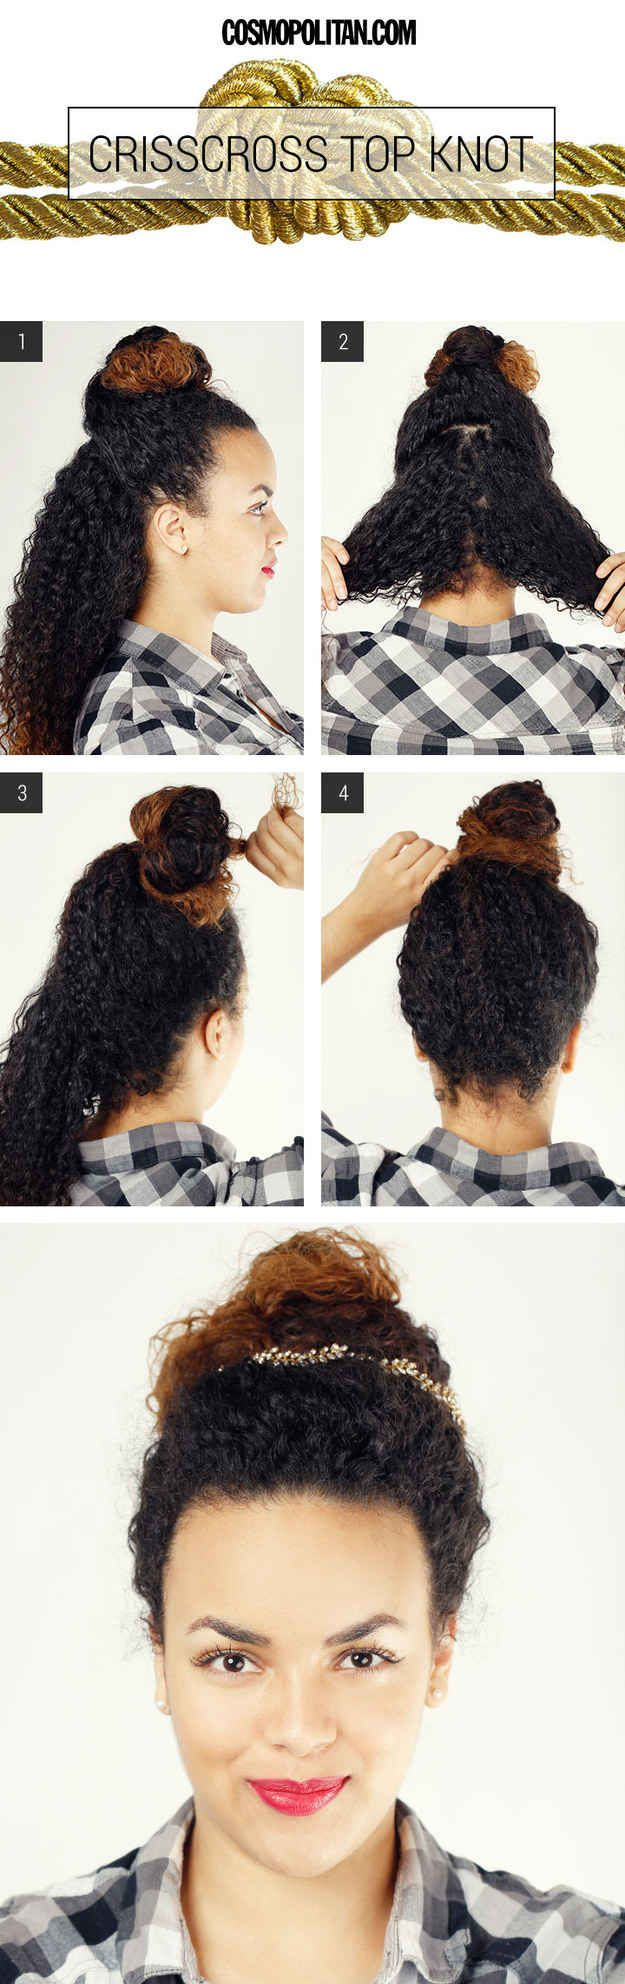 Crisscross curly hair to keep it full ways to take your top